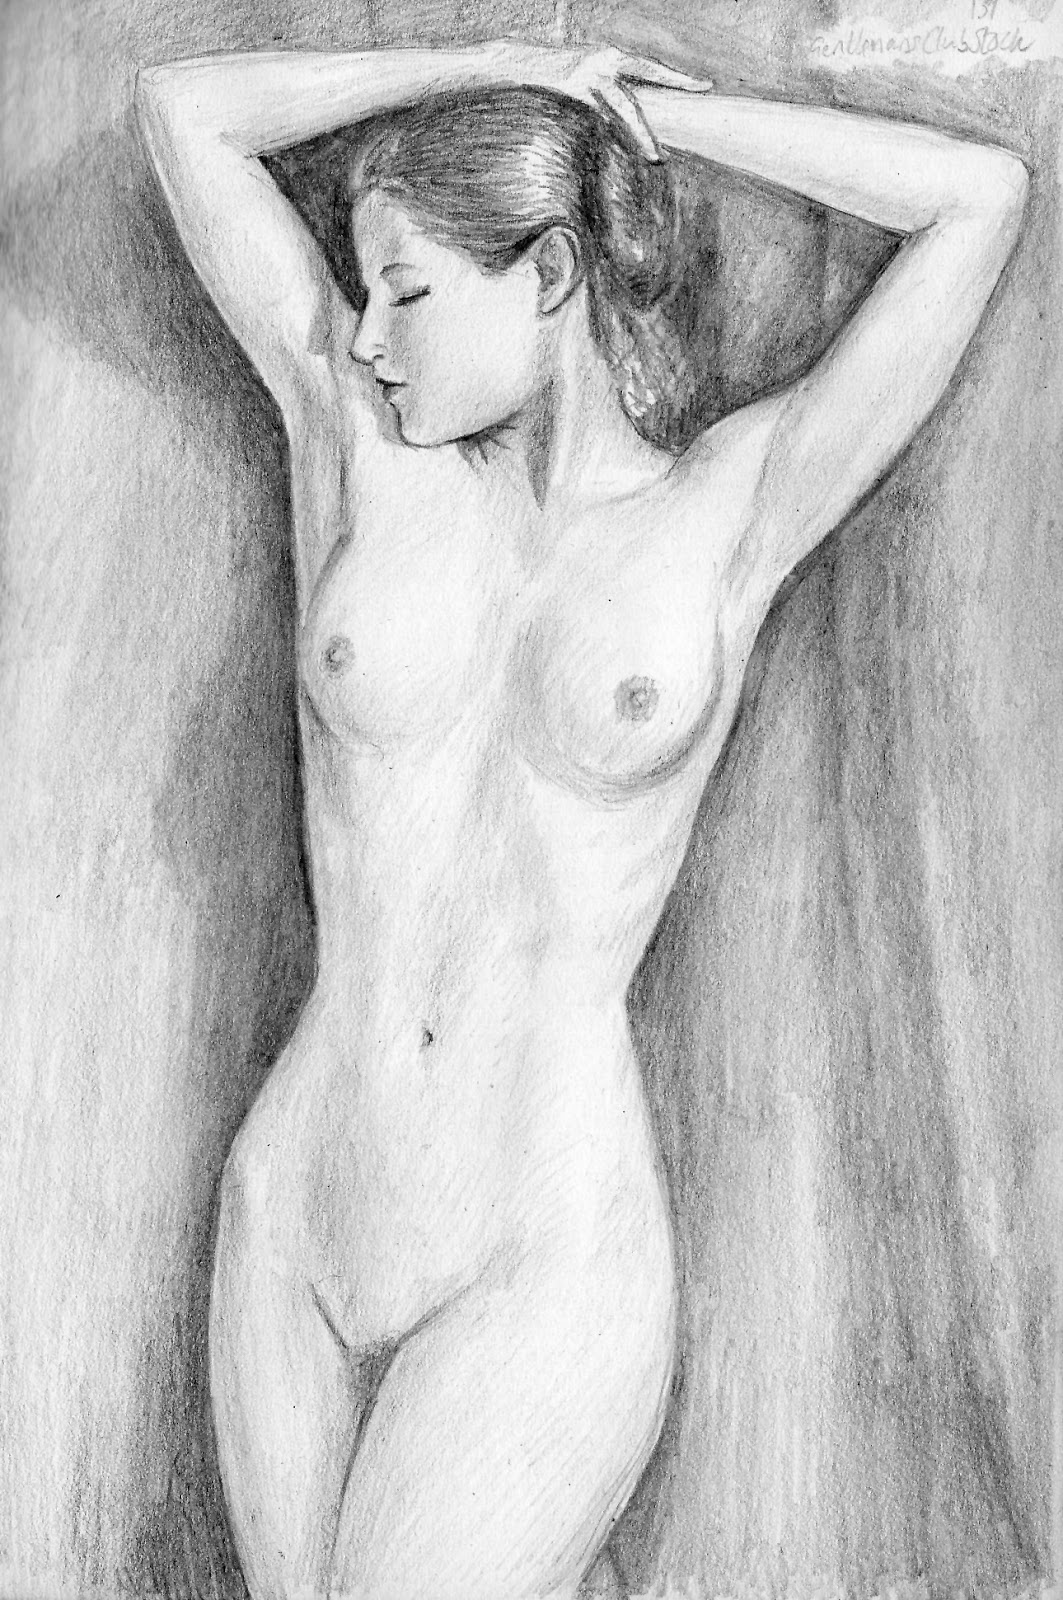 nude sketches of women commence